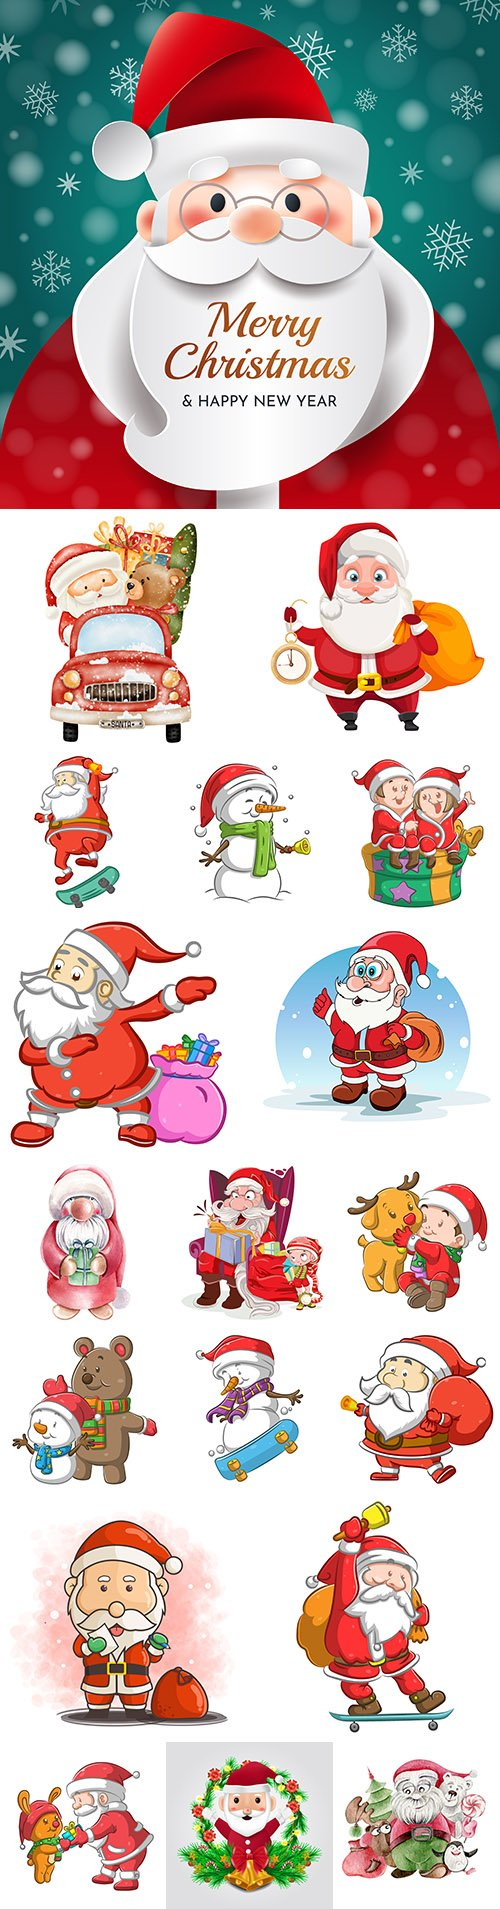 Santa Claus funny character with Christmas gift illustrations collection